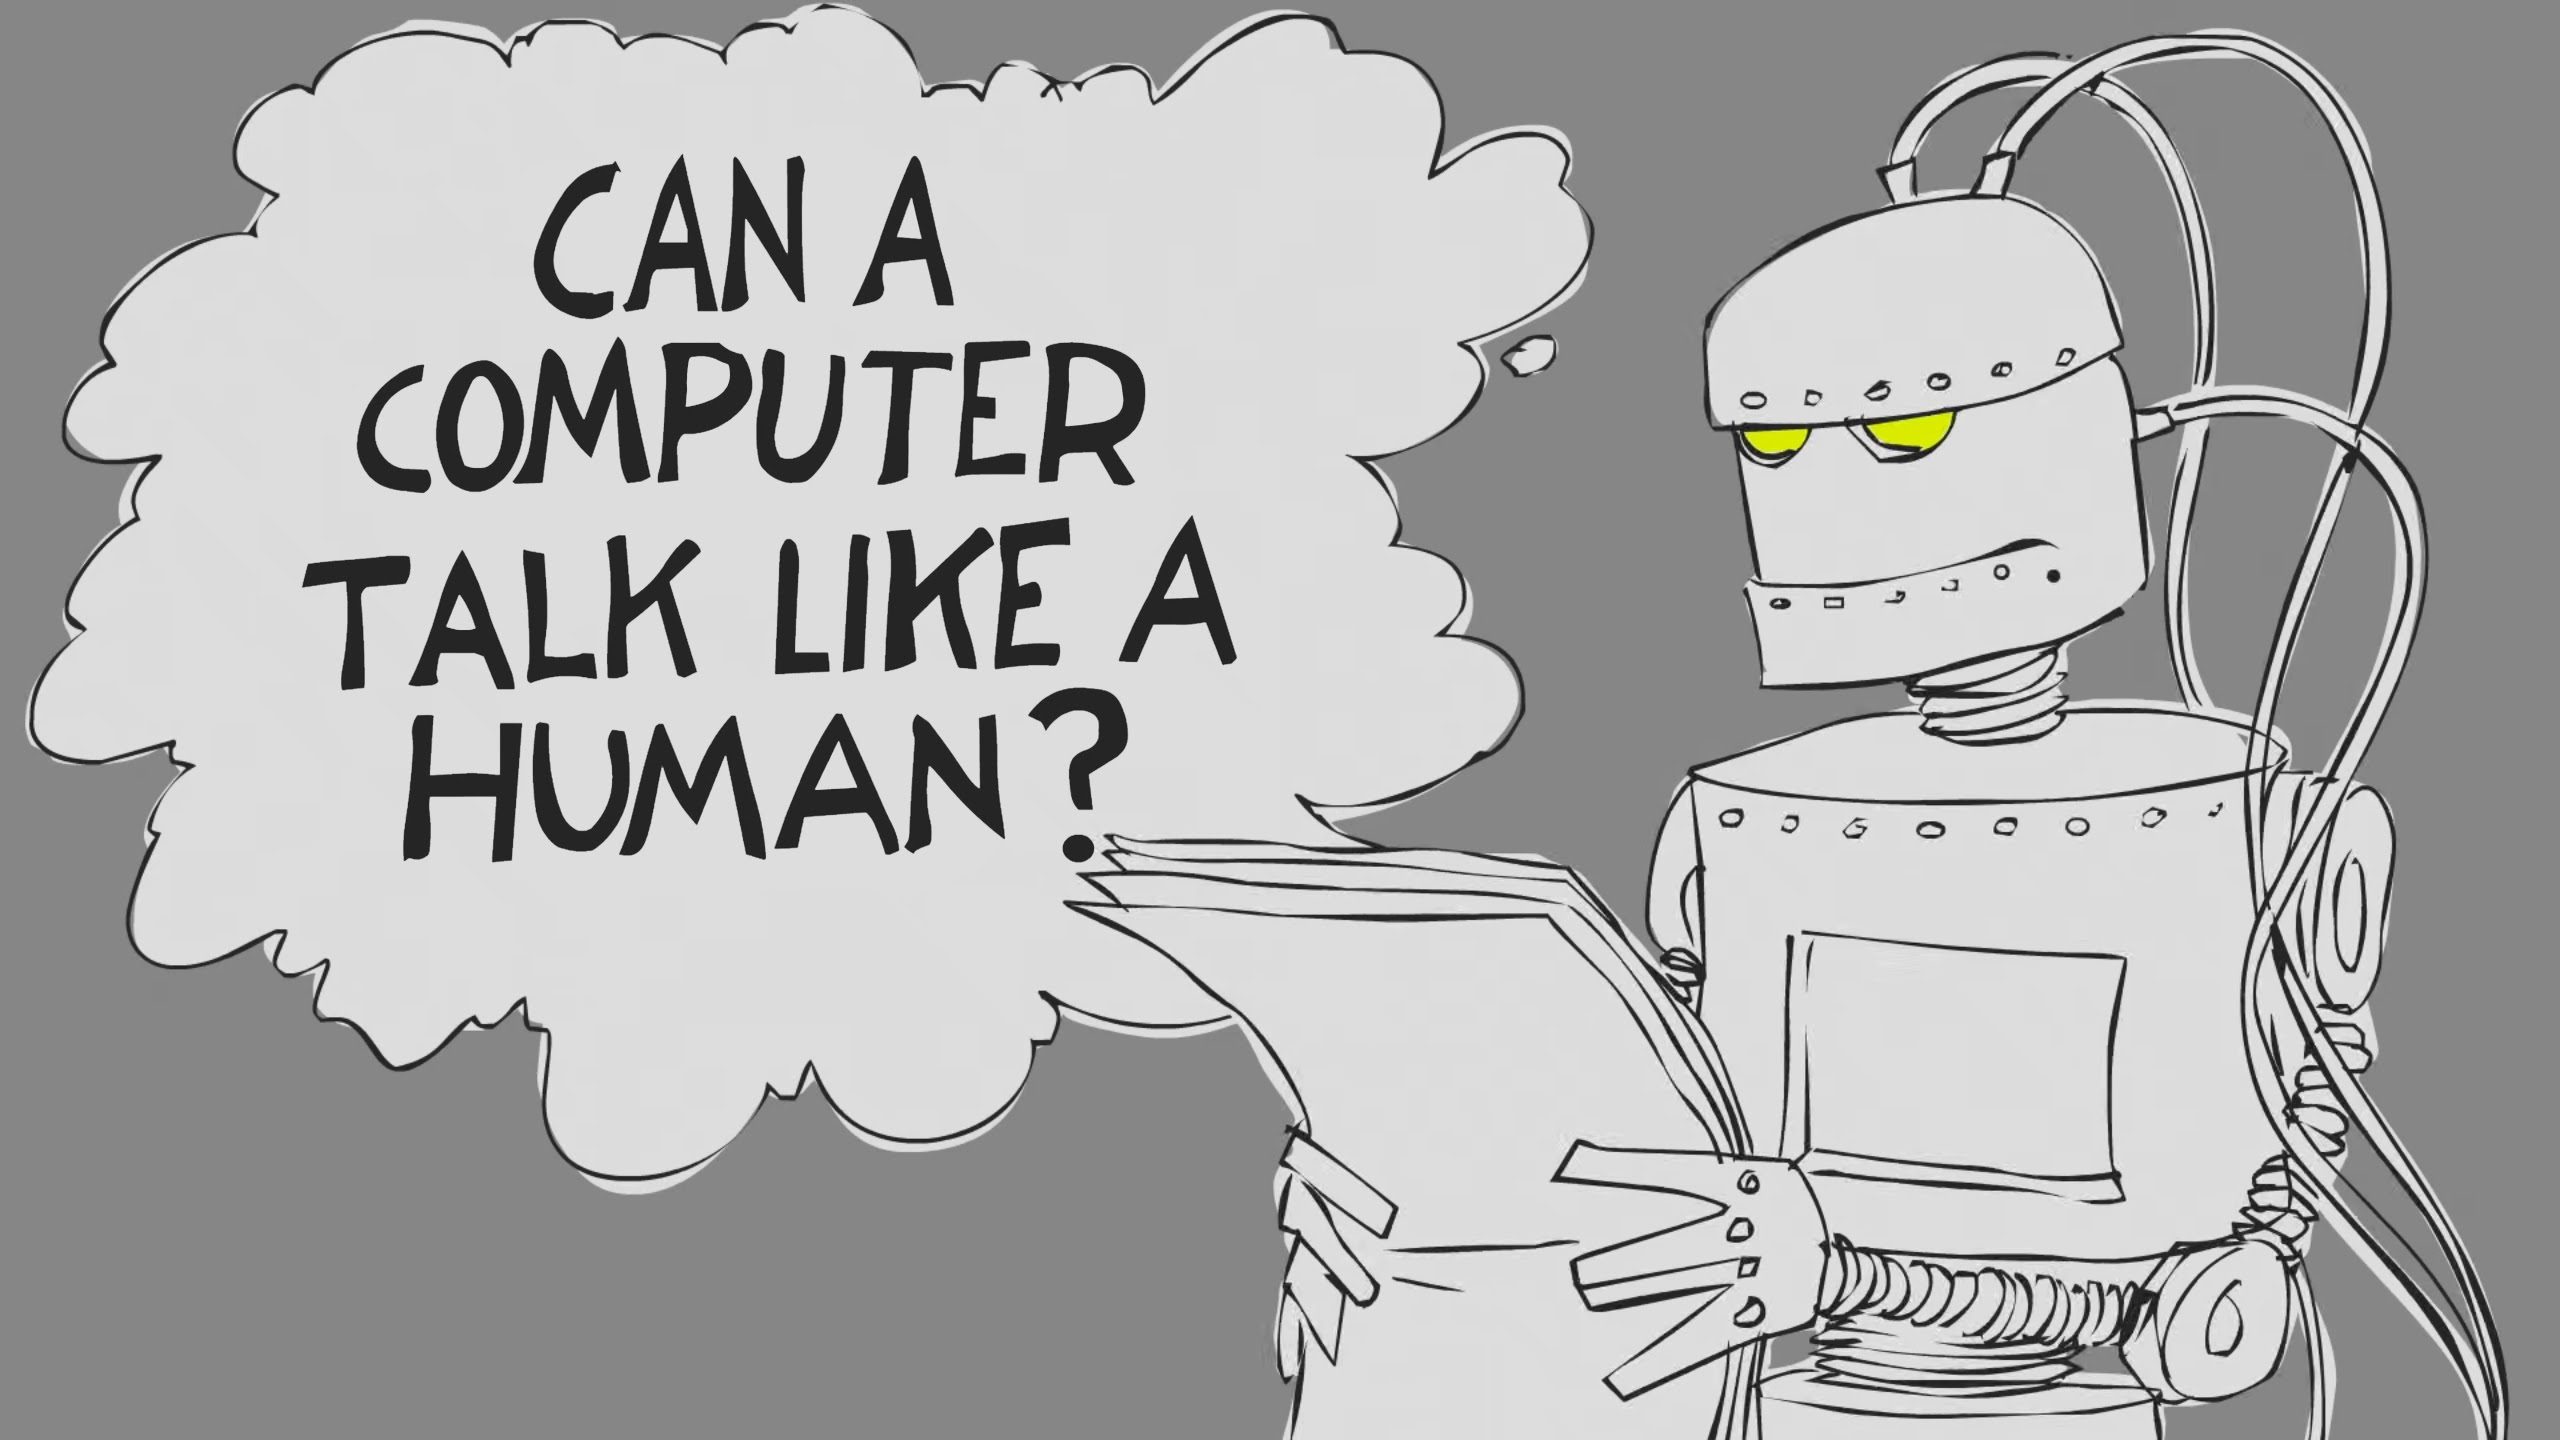 Nevermind Machines. Can Humans Pass the Turing Test? | by Henry Kim |  Becoming Human: Artificial Intelligence Magazine